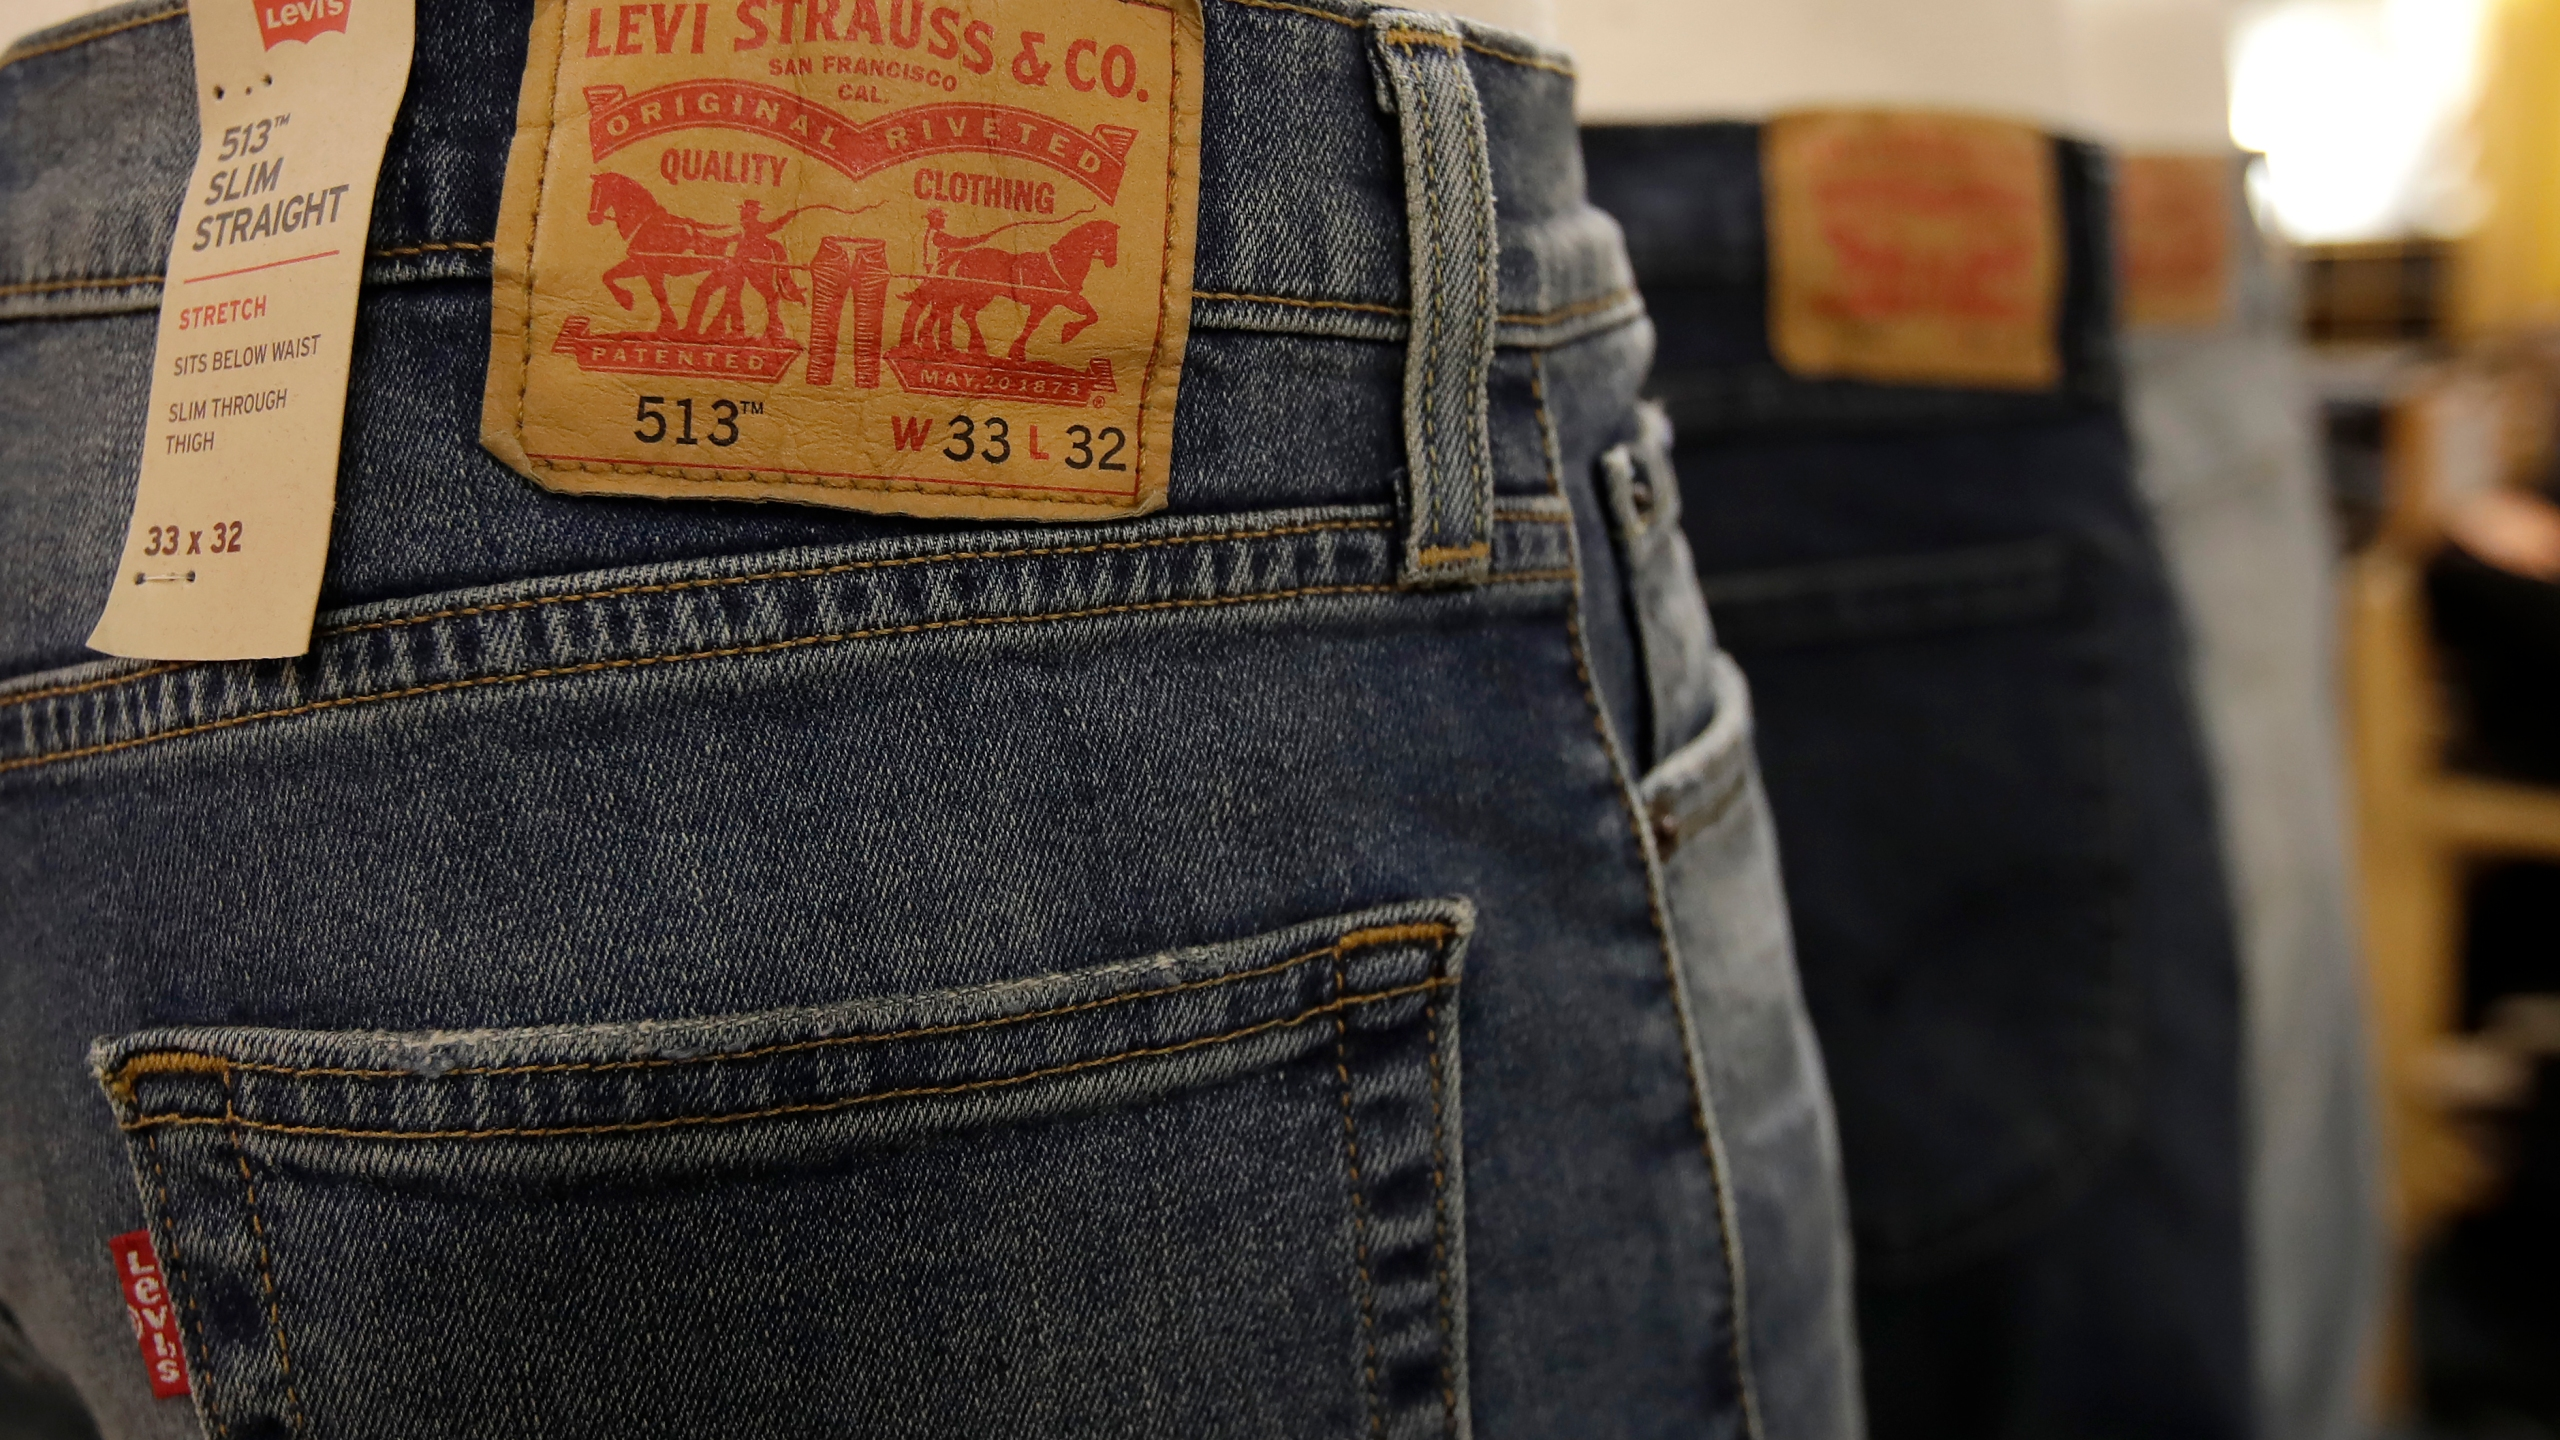 In this Nov. 29, 2019 file photo, Levi's jeans are displayed at a Kohl's store in Colma, California. (Jeff Chiu/Associated Press)